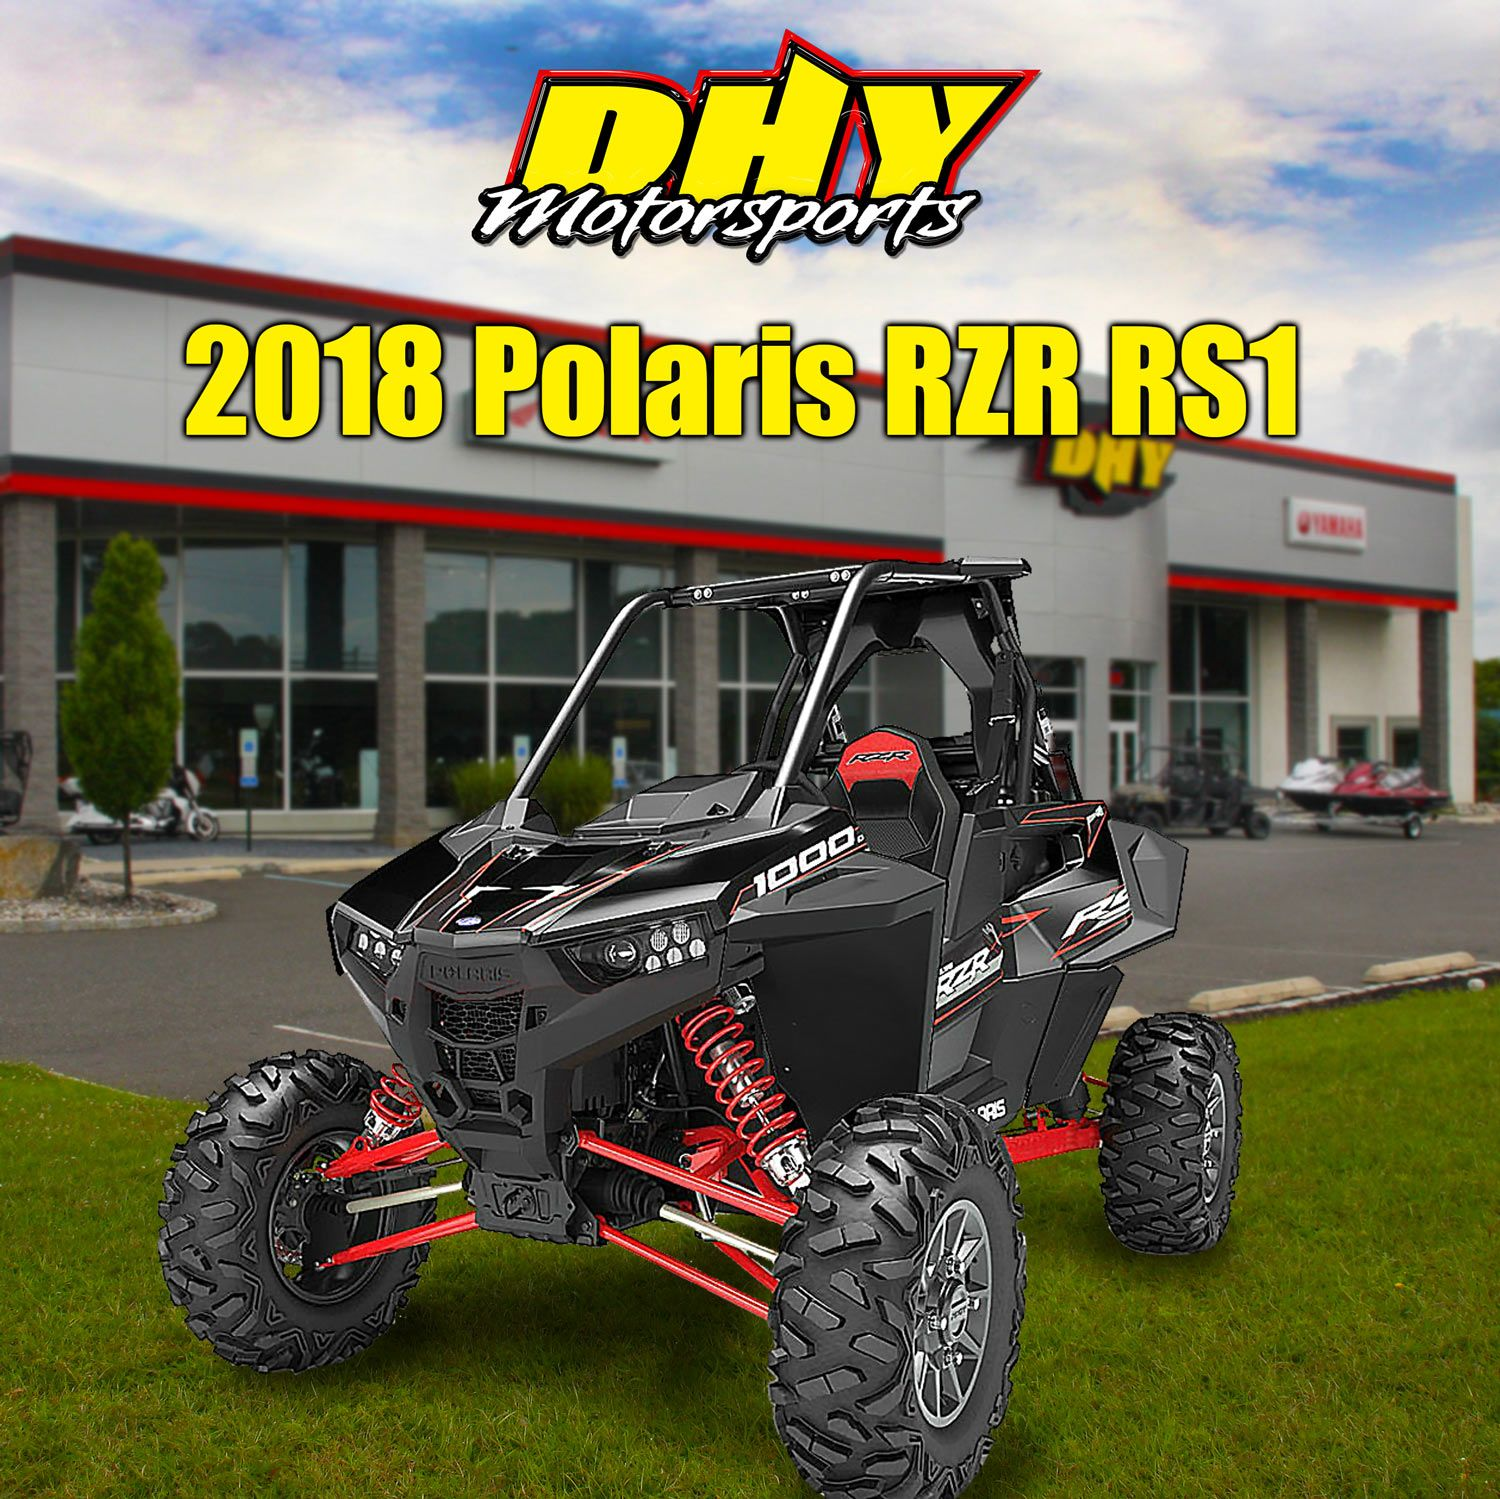 The #Polaris #RZR #RS1, featuring the power & suspension of the RZR